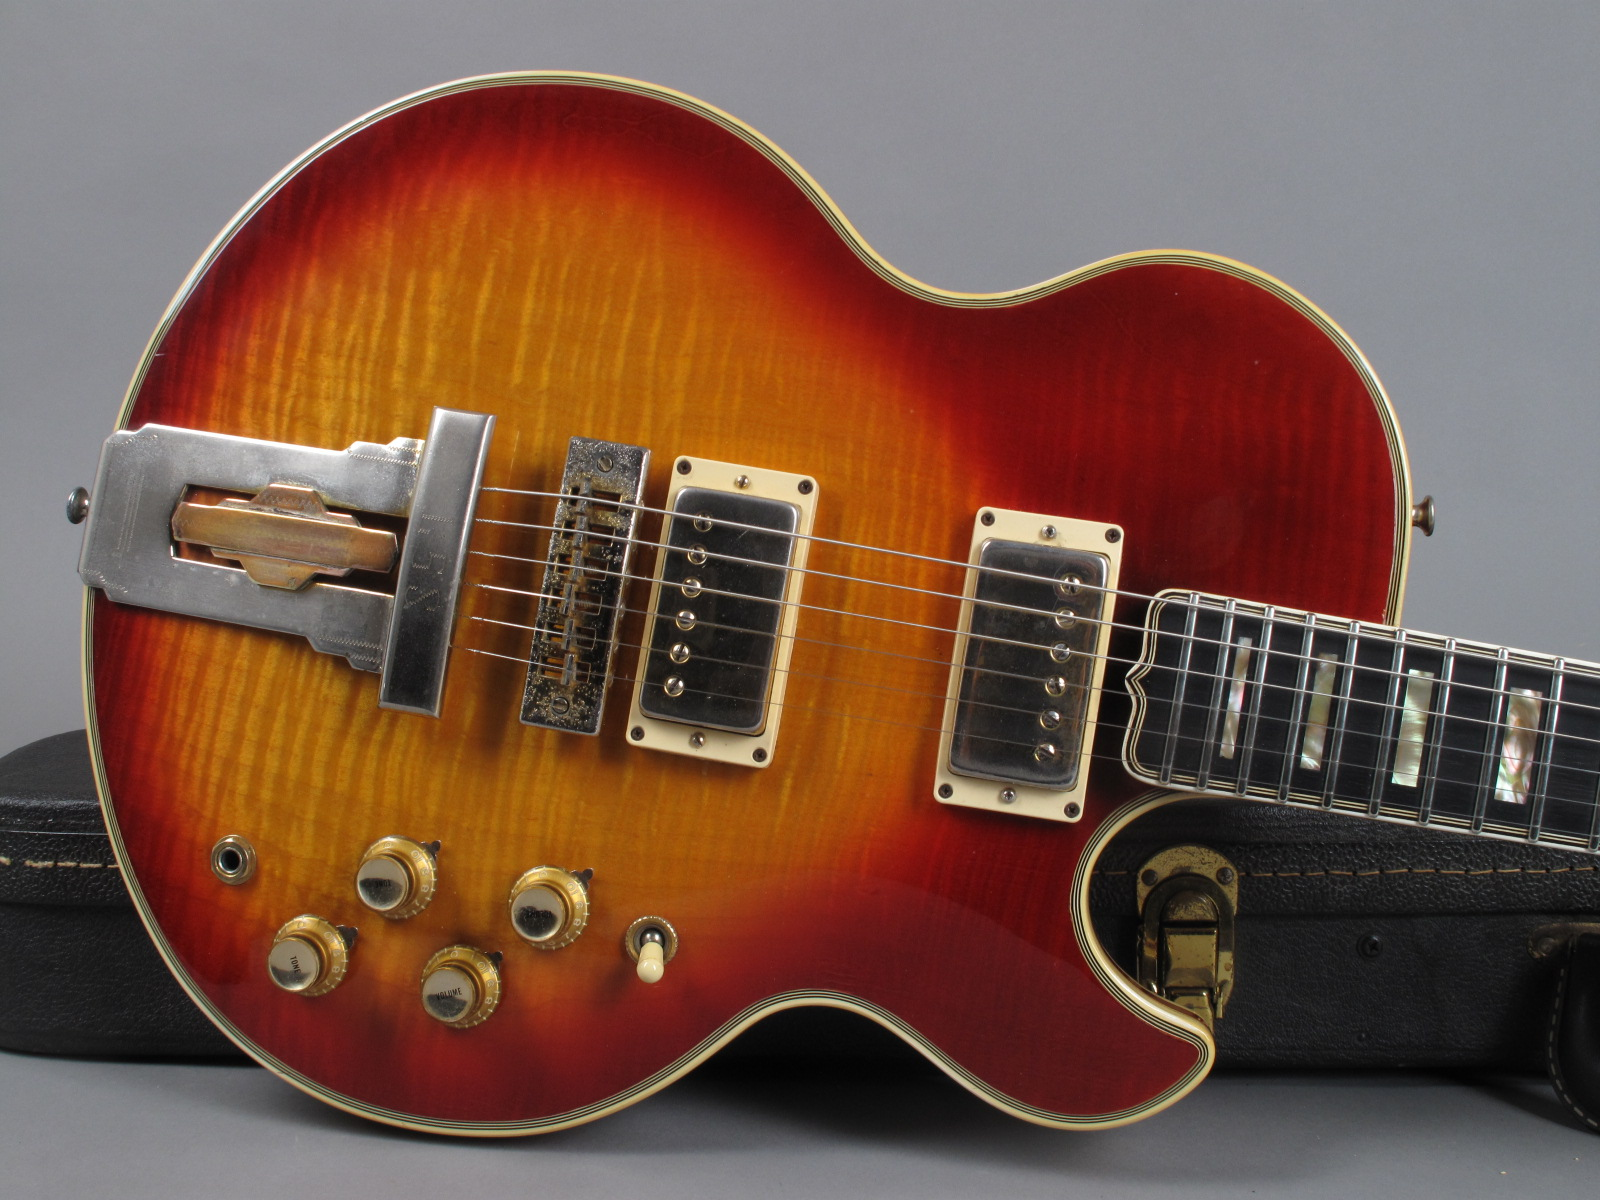 https://guitarpoint.de/app/uploads/products/1974-gibson-l5s-custom-sunburst-flametop/1974-Gibson-L5s_Flametop-000632-8.jpg